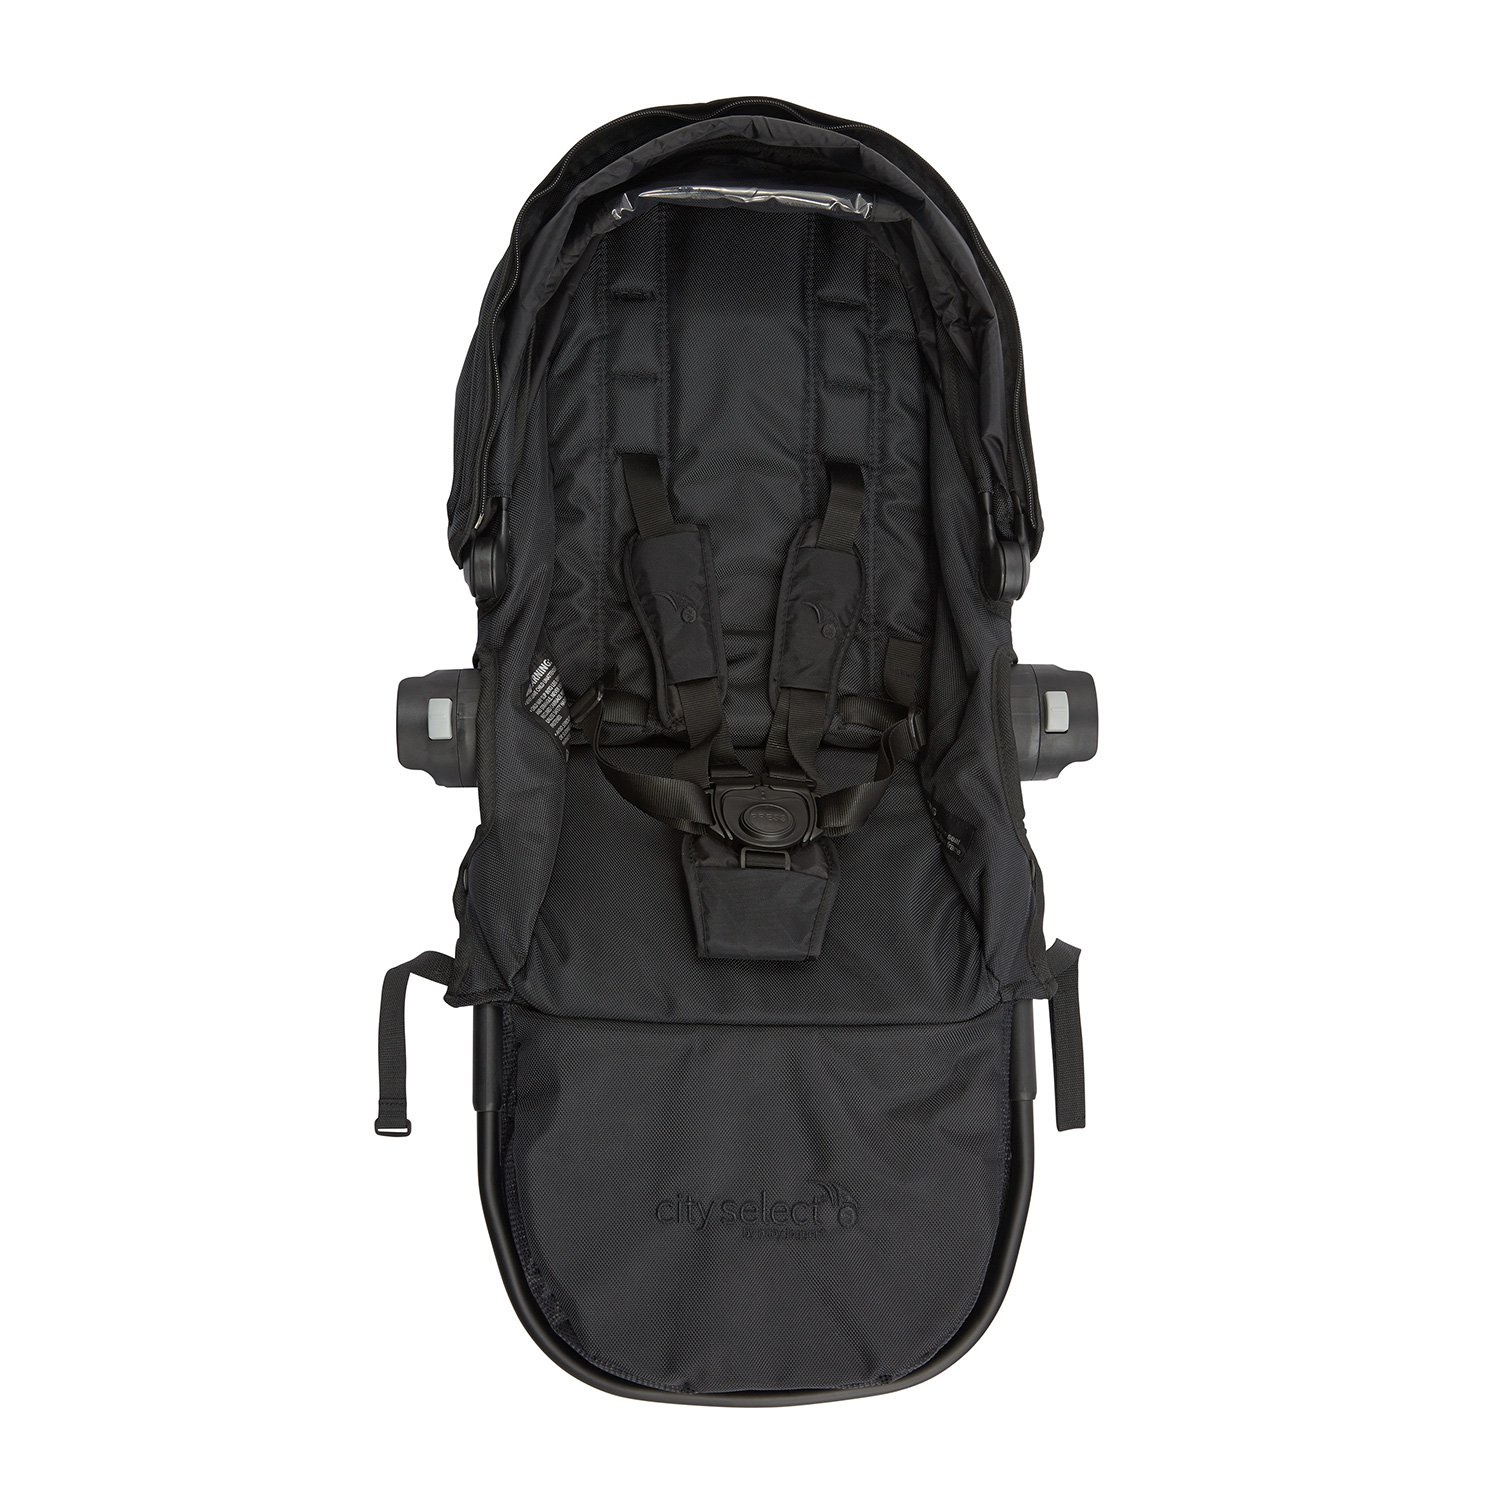 Baby Jogger City Select Second Seat Kit, Black by Baby Jogger (Image #6)